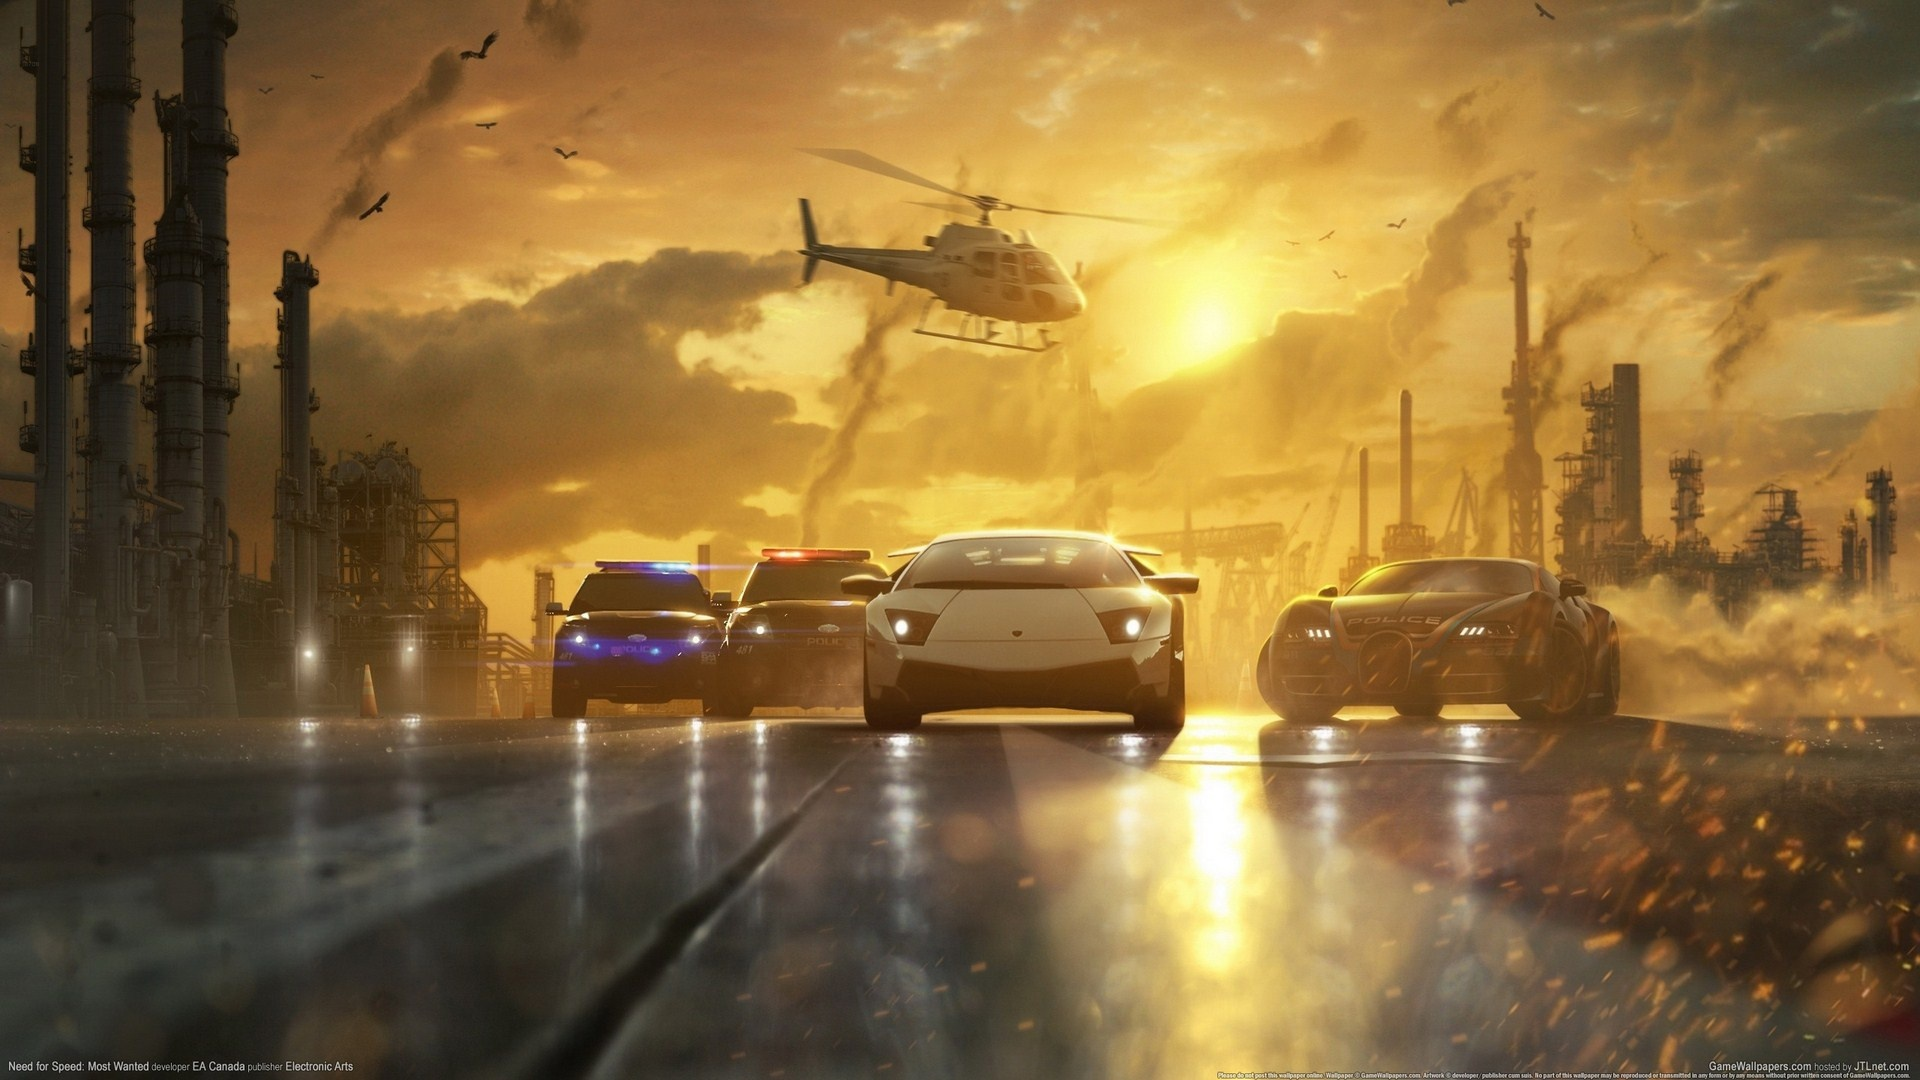 10 Most Popular Need For Speed Wallpaper Full Hd 1080p For: Download Wallpaper 1920x1080 Need For Speed: Most Wanted